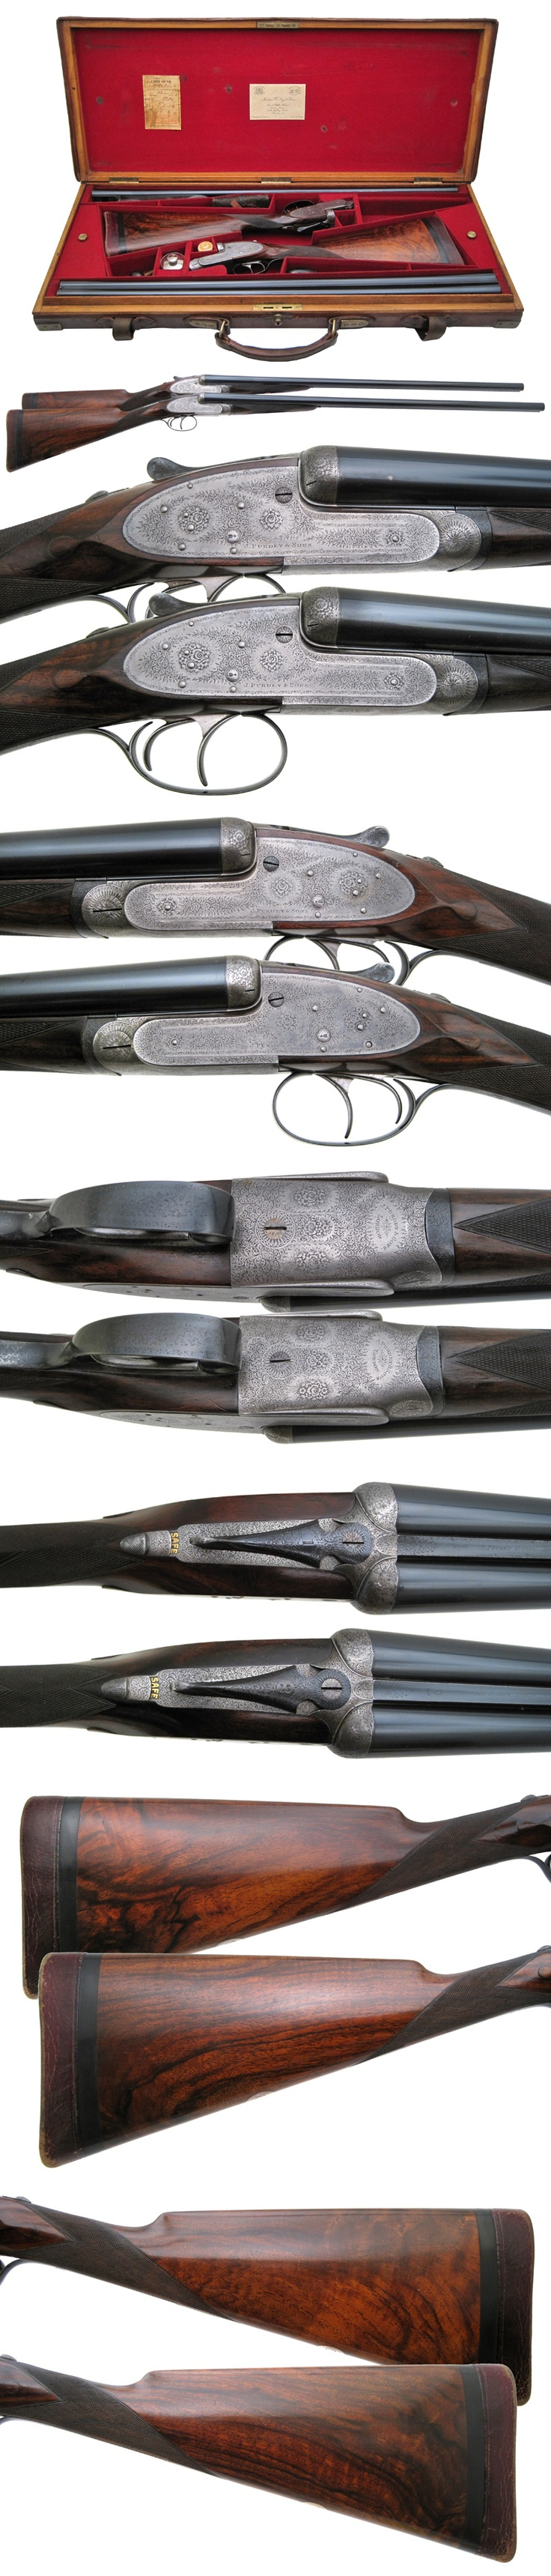 Griffin & Howe - Gun Details Page  Another Purdey pair.......